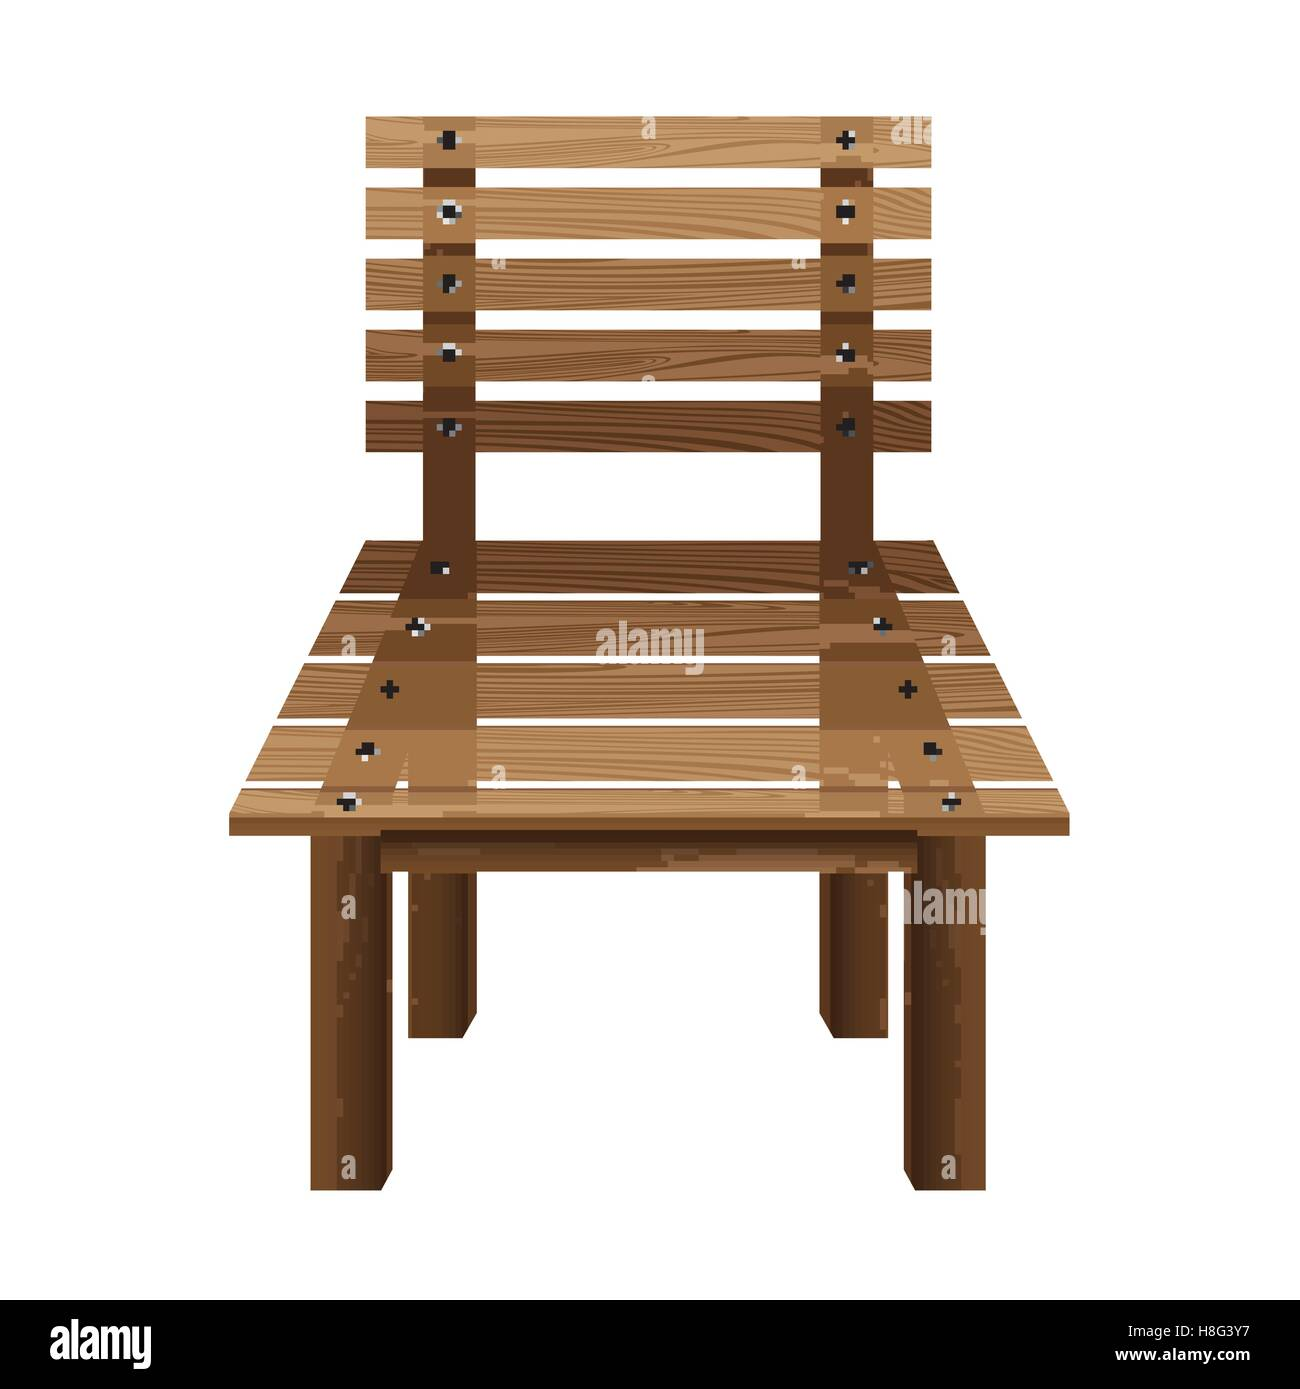 Möbel Design Holz Stuhl Holz Vektor Hocker Isoliert Illustration Objekt